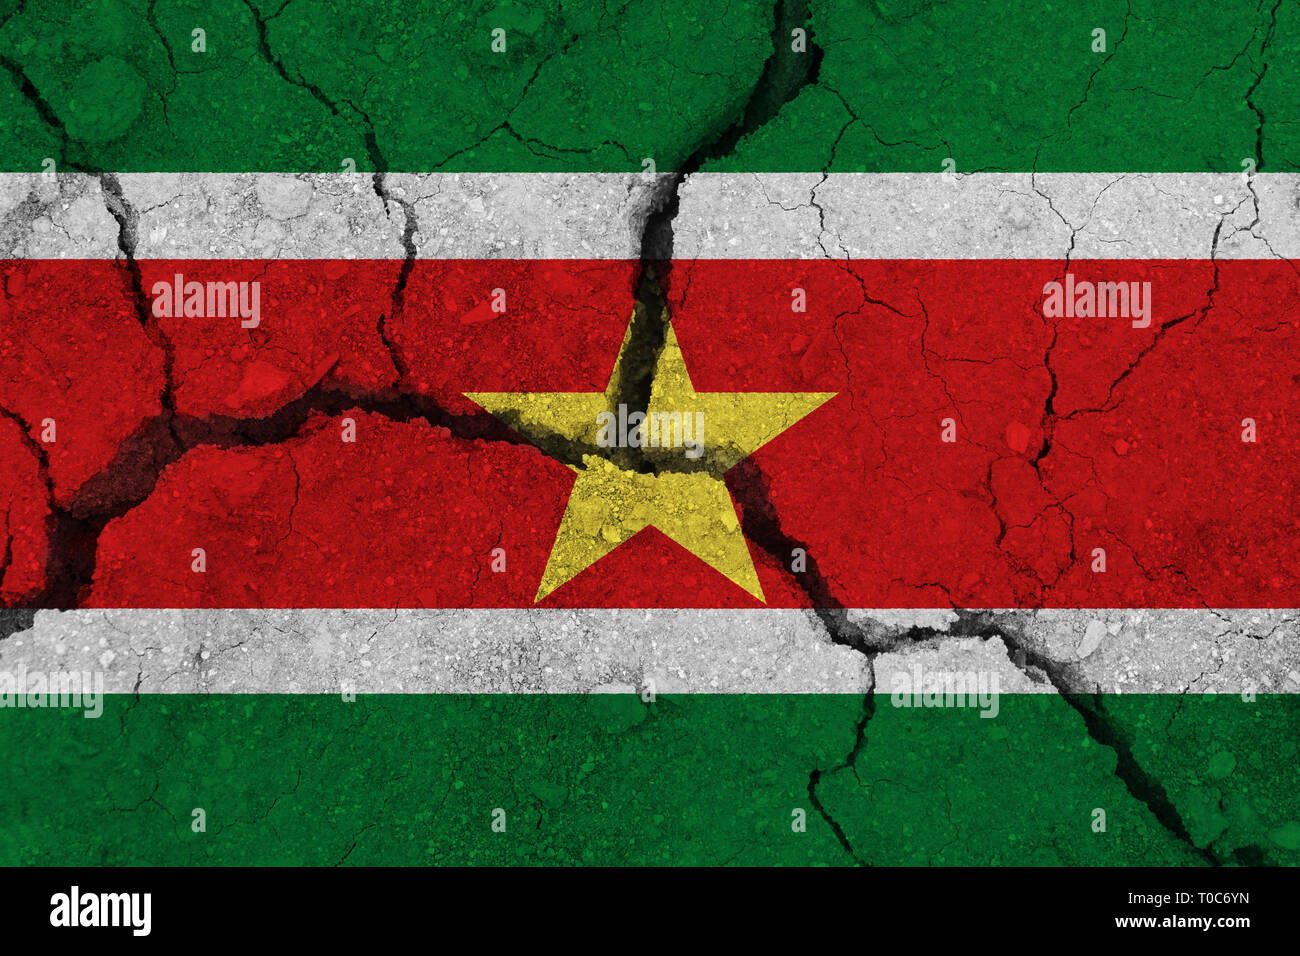 Suriname flag on the cracked earth. National flag of Suriname. Earthquake or drought concept - Stock Image